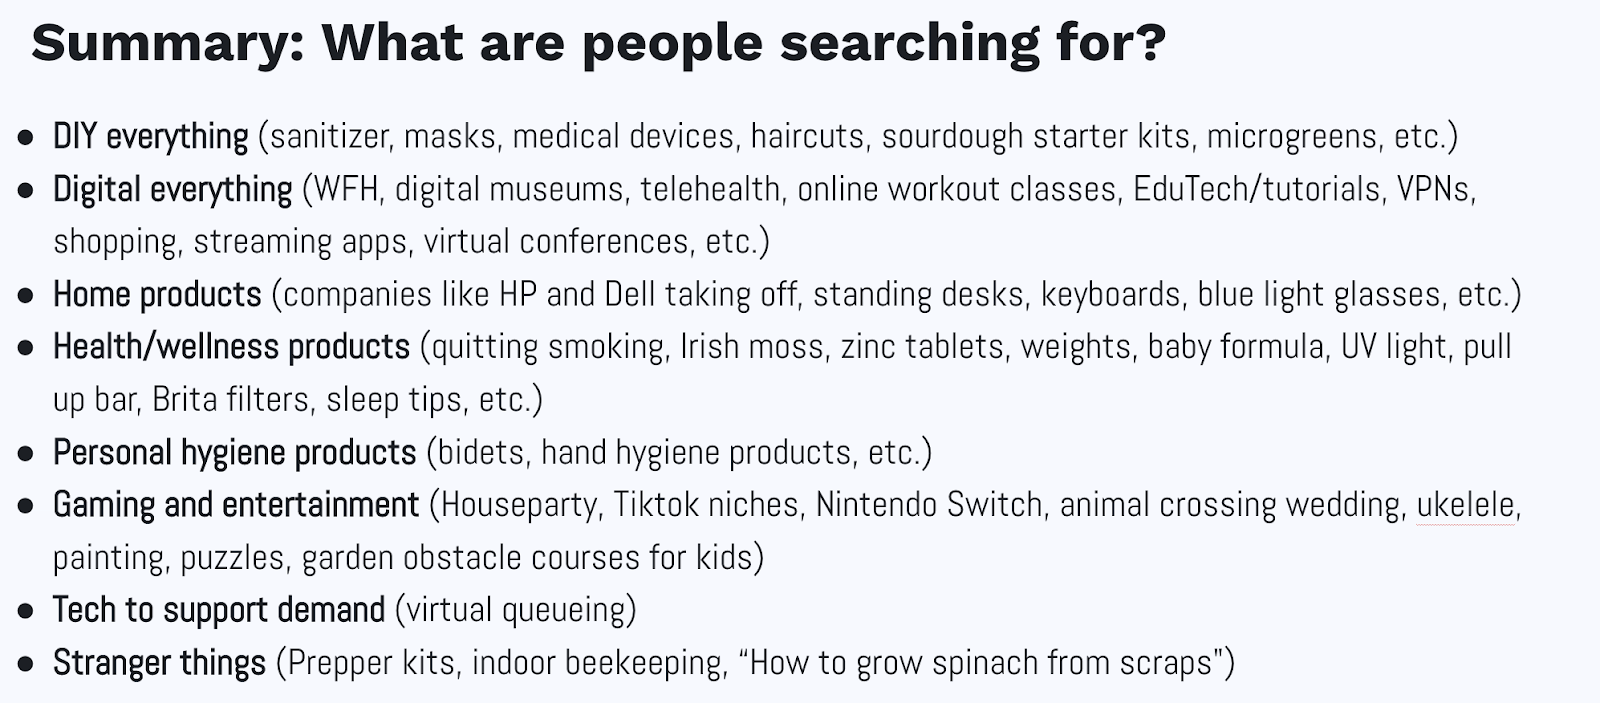 Bullet points classification on what are people searching for.